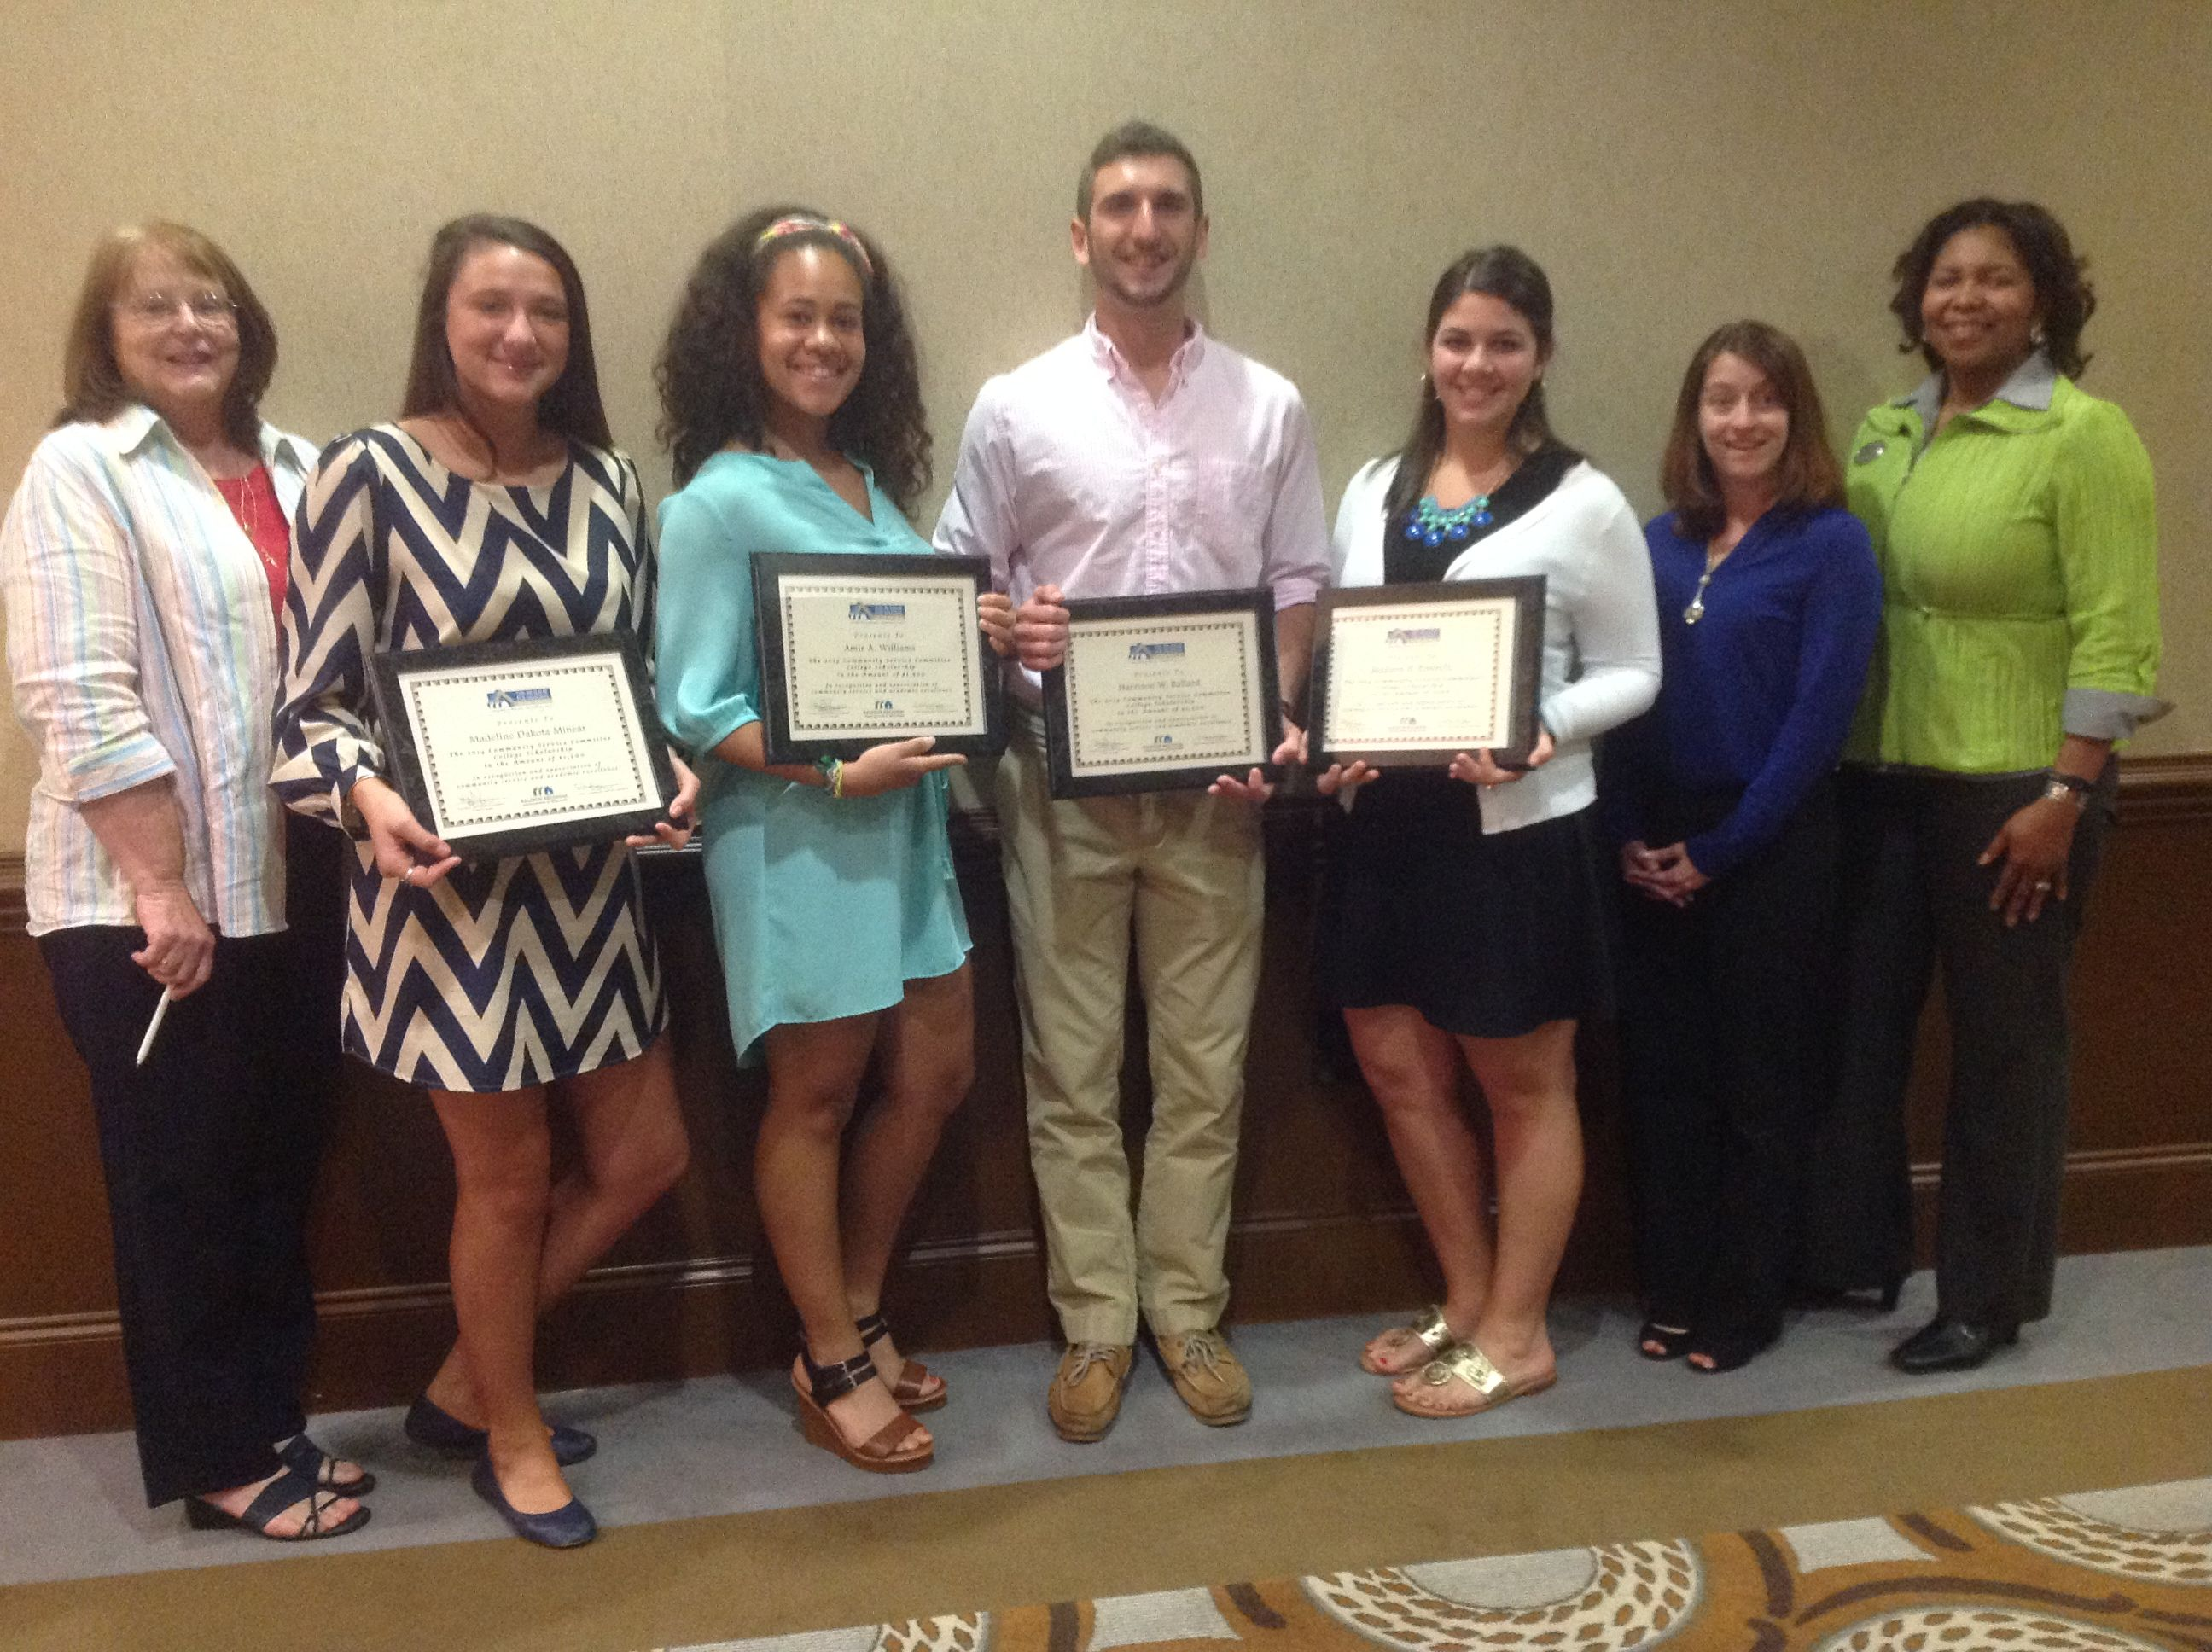 REALTOR Foundation of the Triangle Scholarship recipients